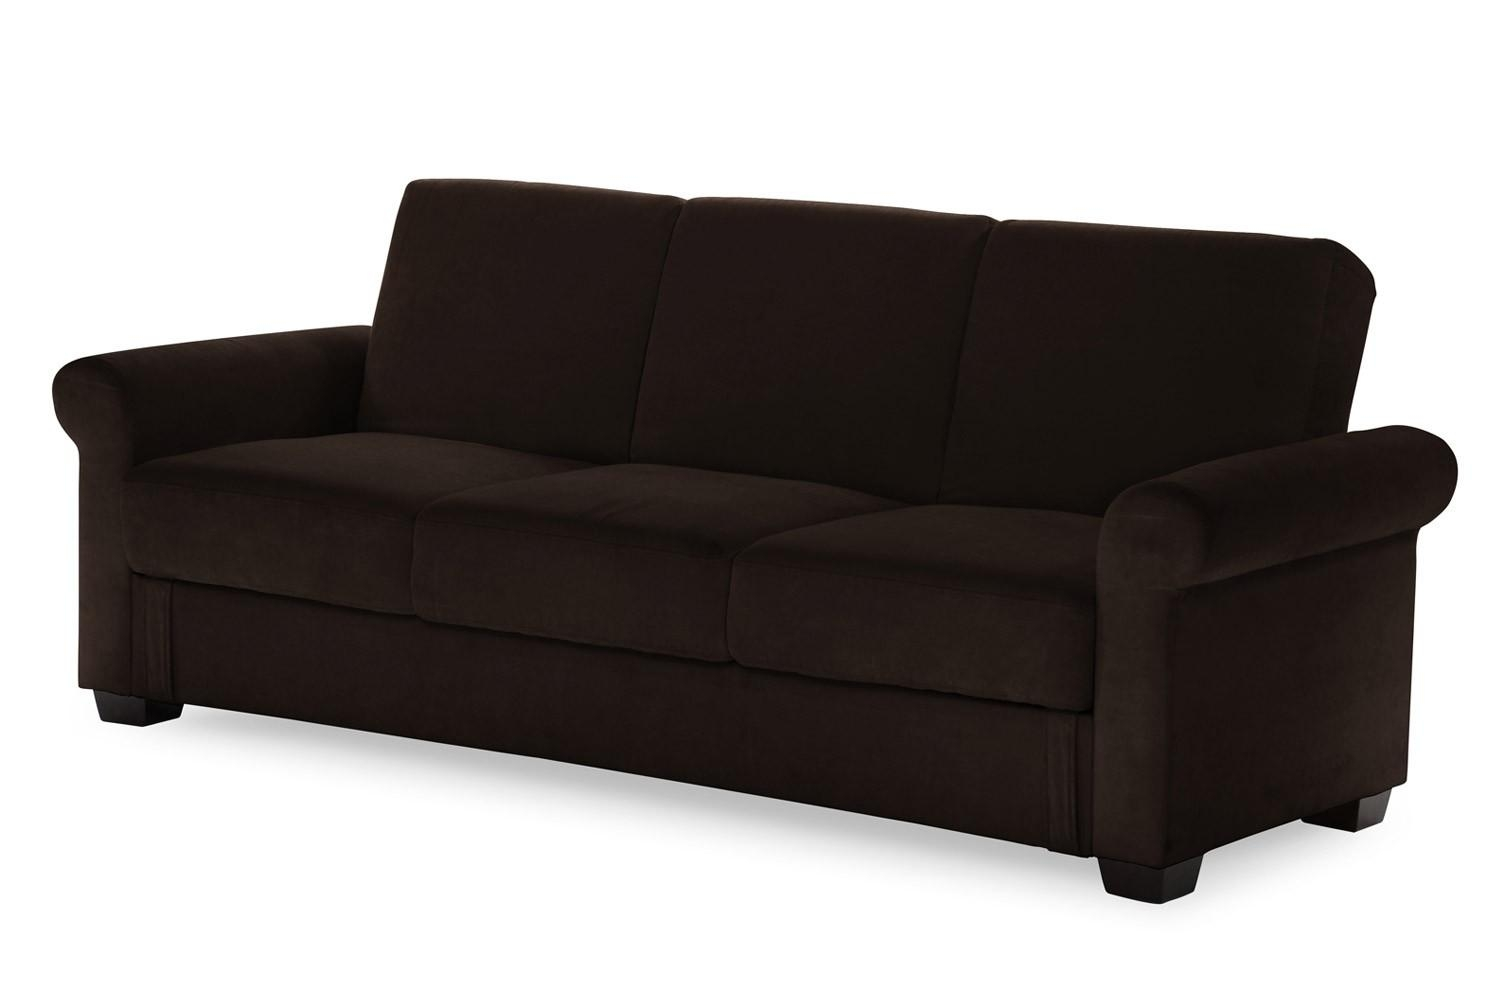 Full Size Sofa Bed | Design Your Life Pertaining To Full Size Sofa Beds (Image 4 of 20)